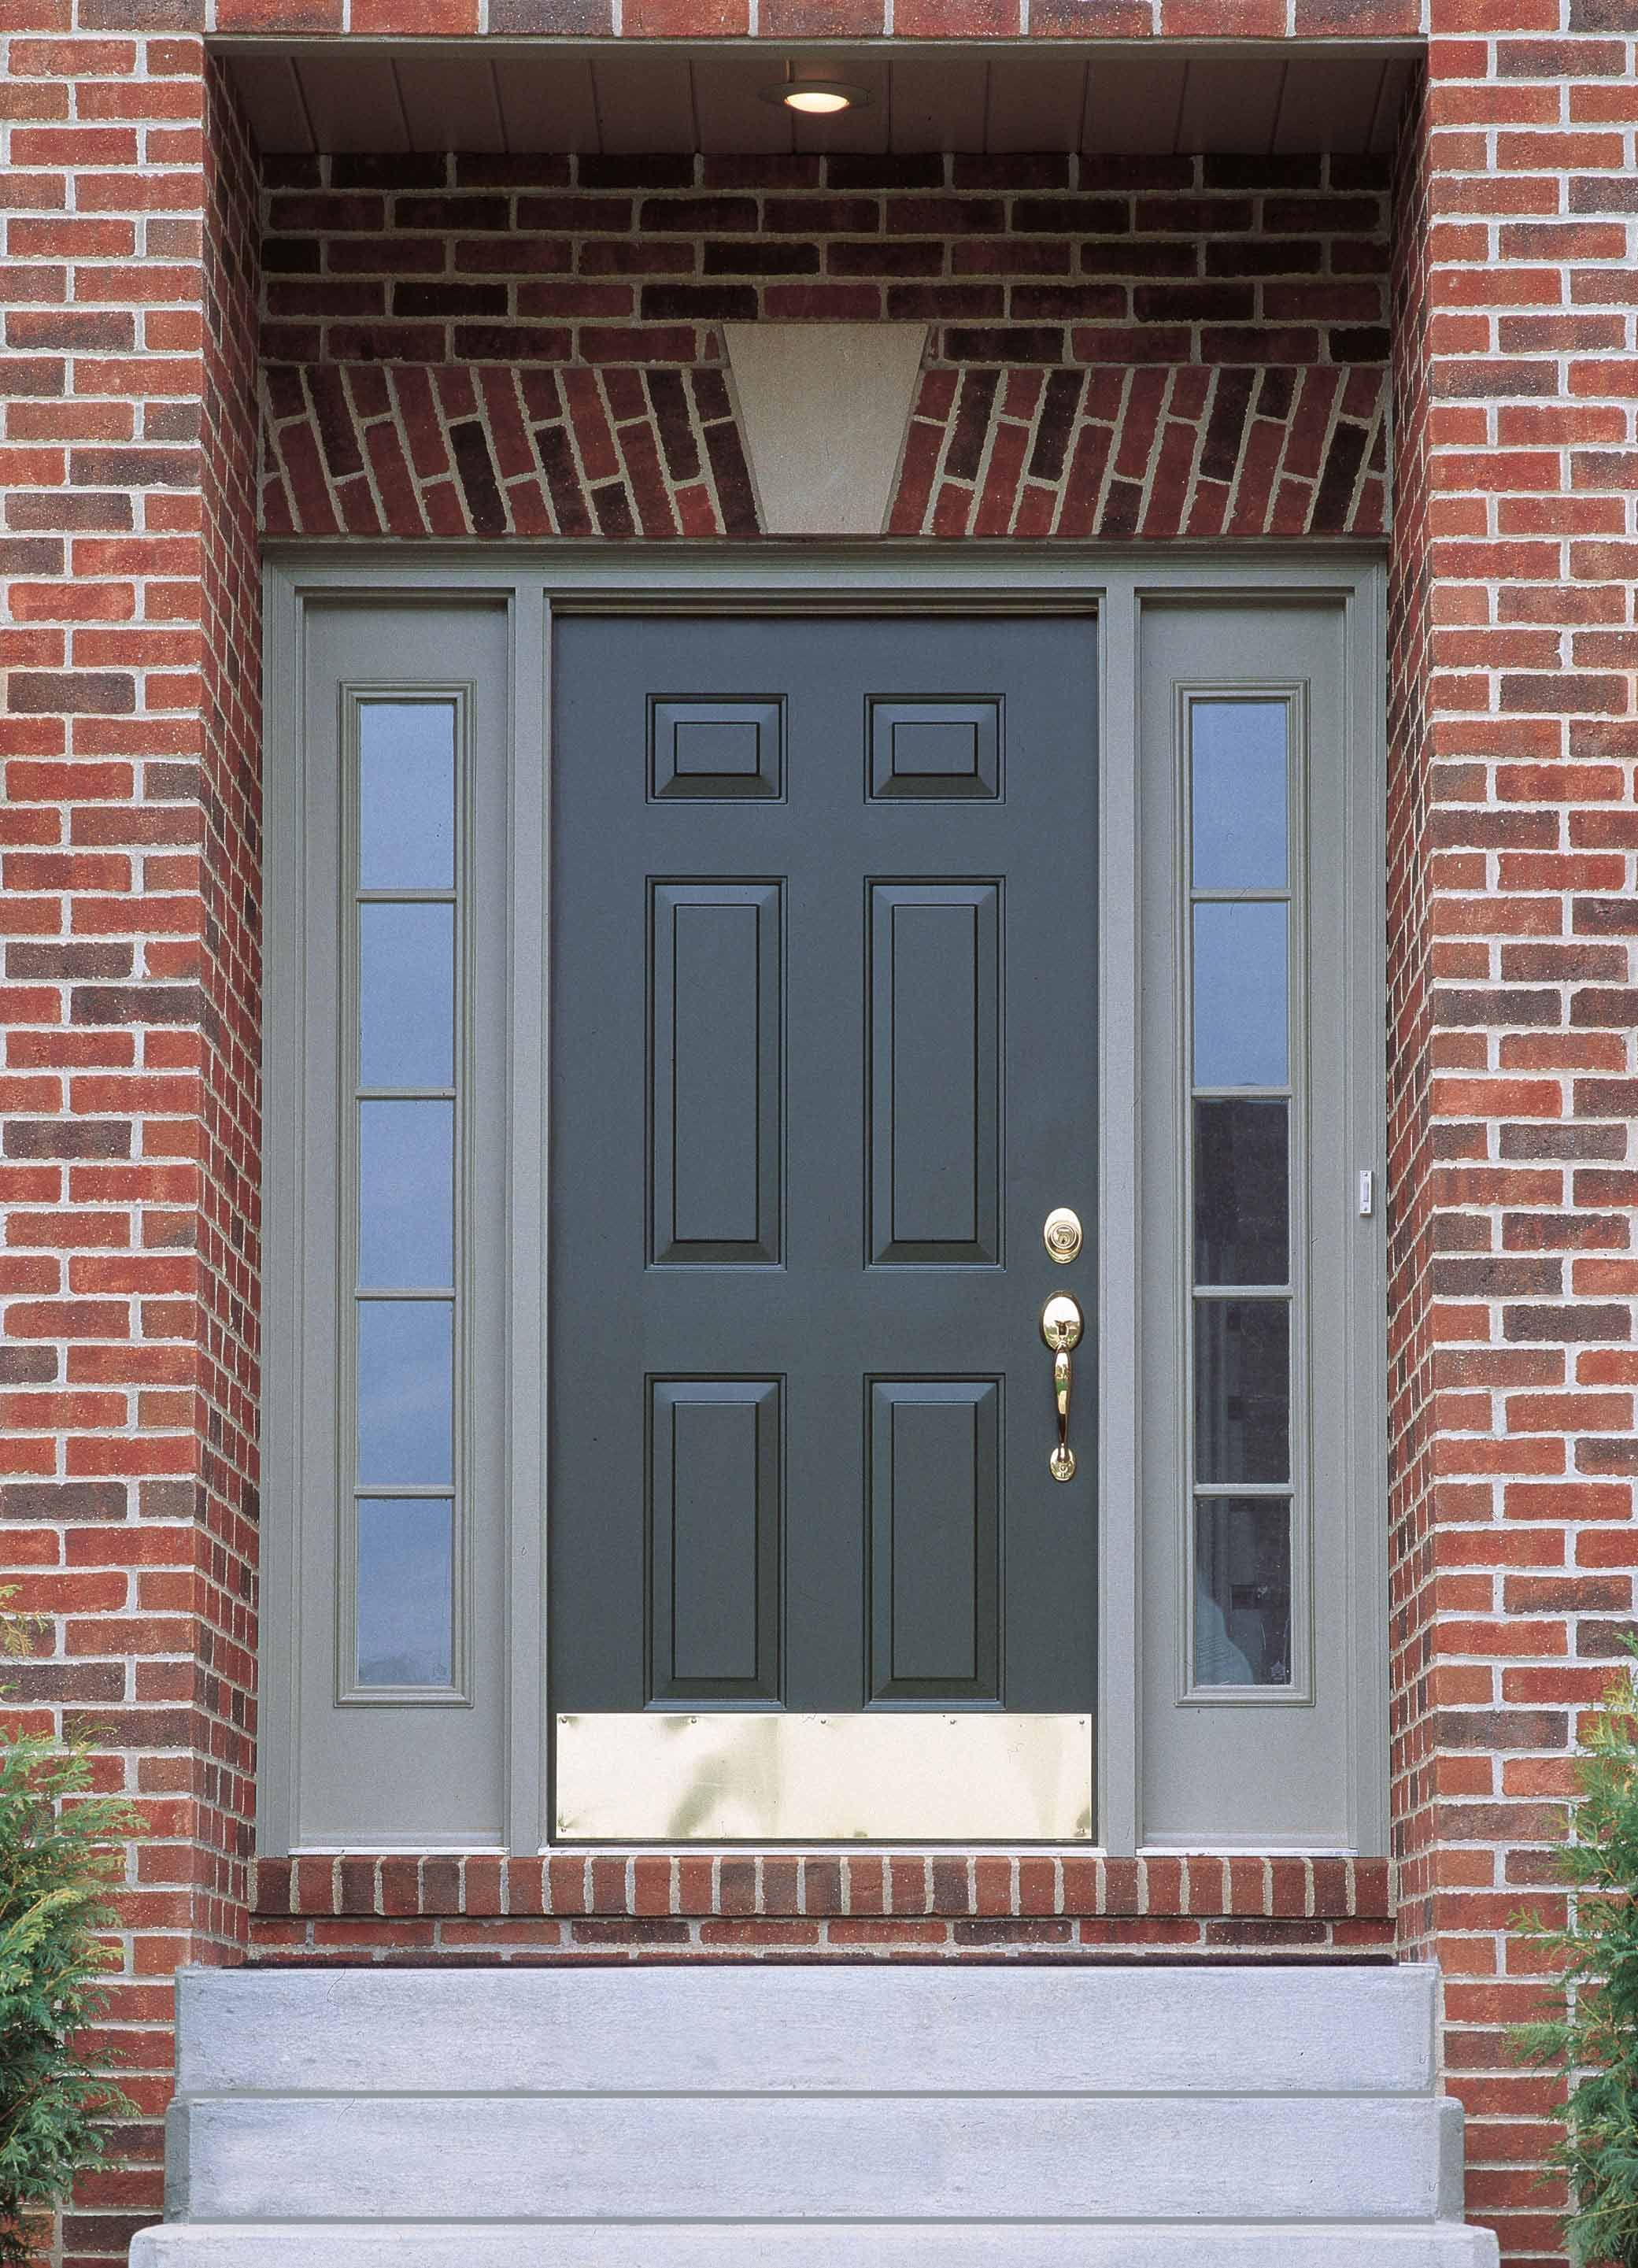 Architecture steel entry door picture of exterior entrance door design best entry doors best for Exterior garage doors